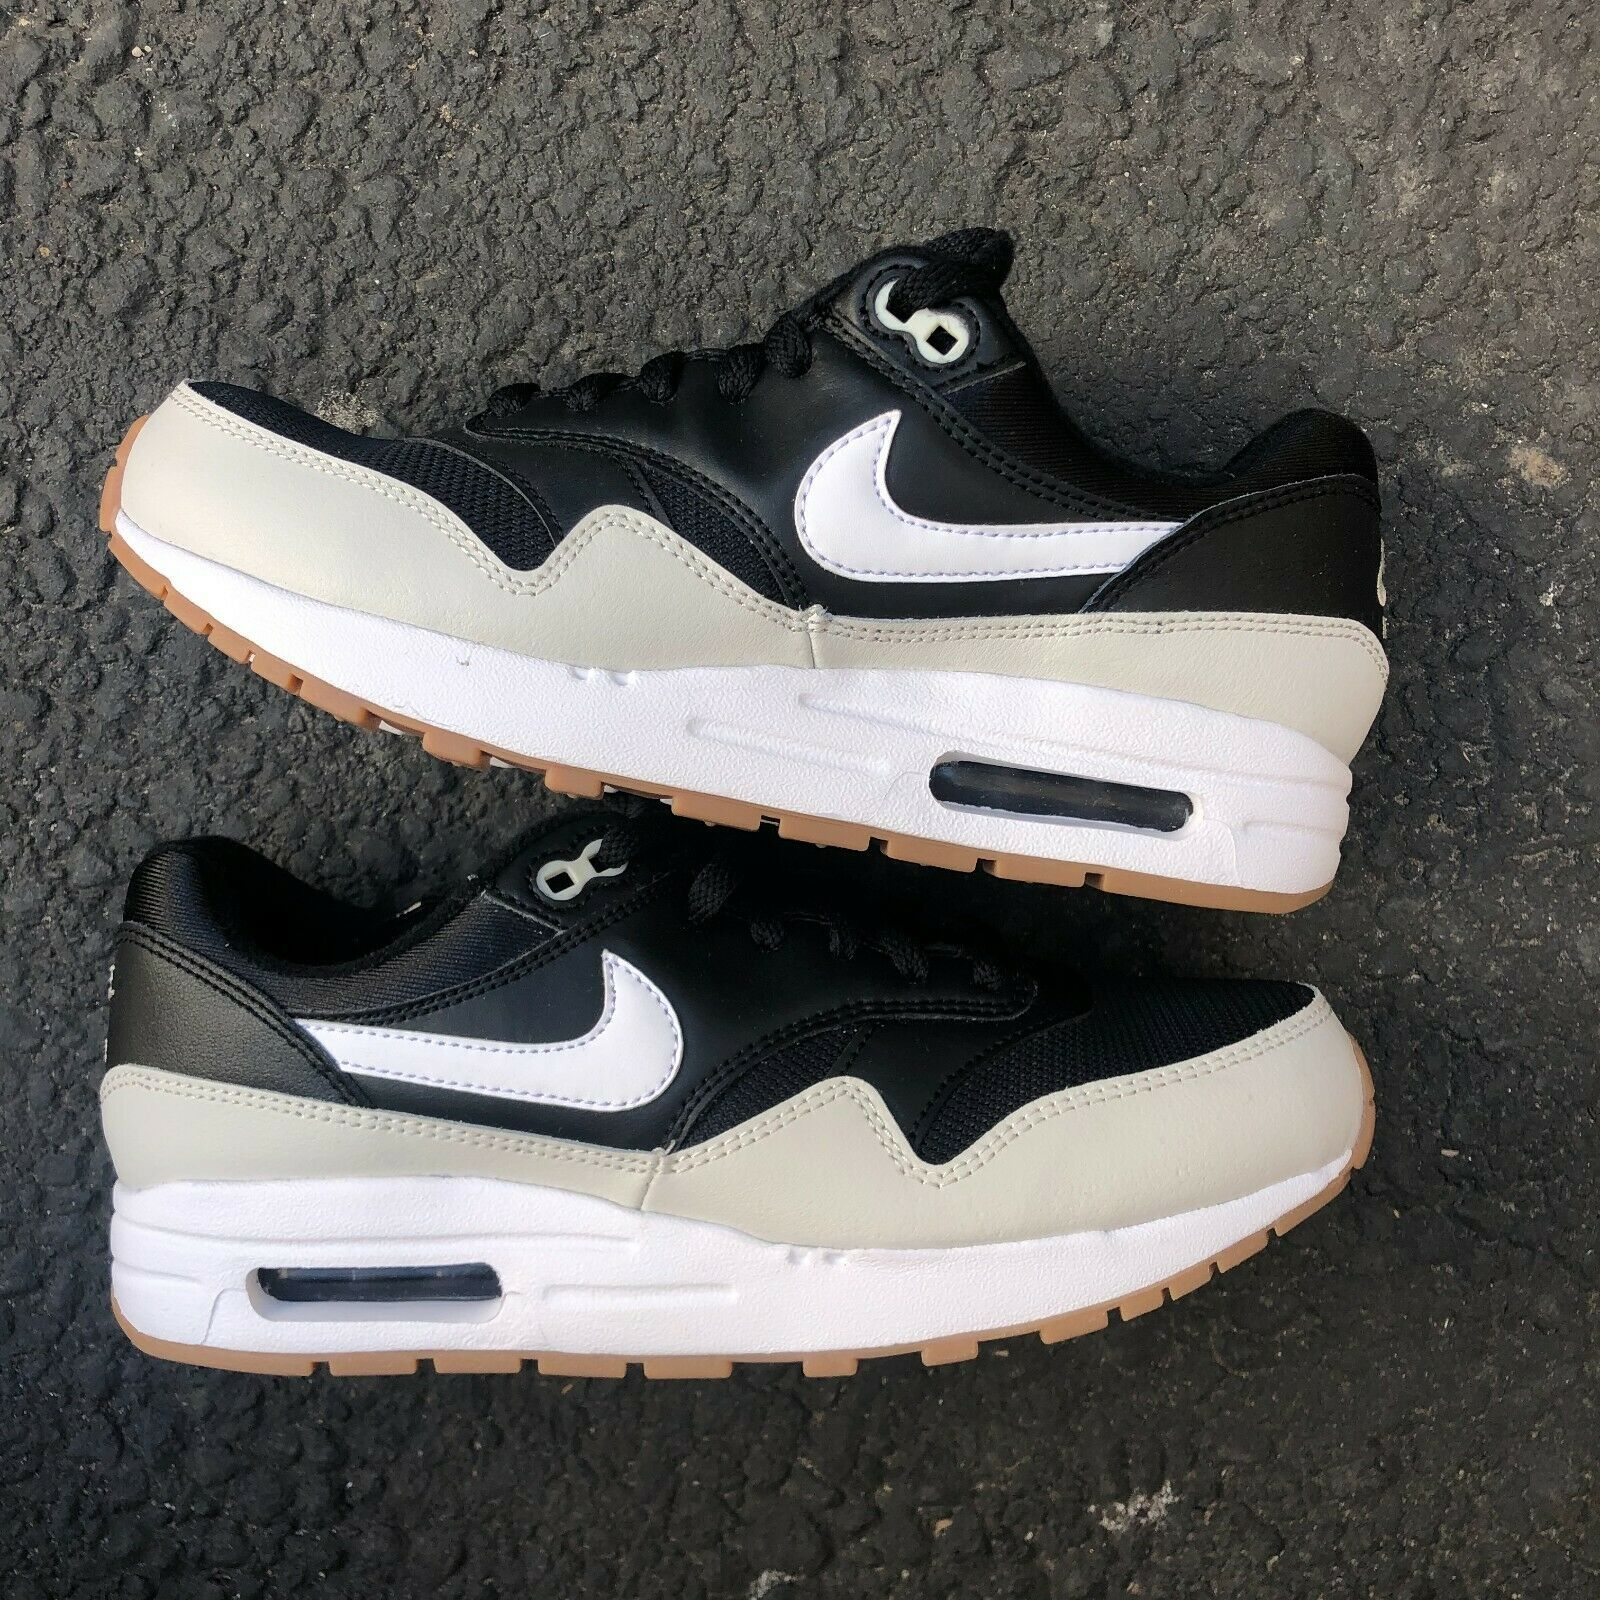 Primary image for NIKE AIR MAX 1 GS BLACK LIGHT BONE KIDS' ATHLETIC SNEAKER 807602-011 YOUTH 7Y